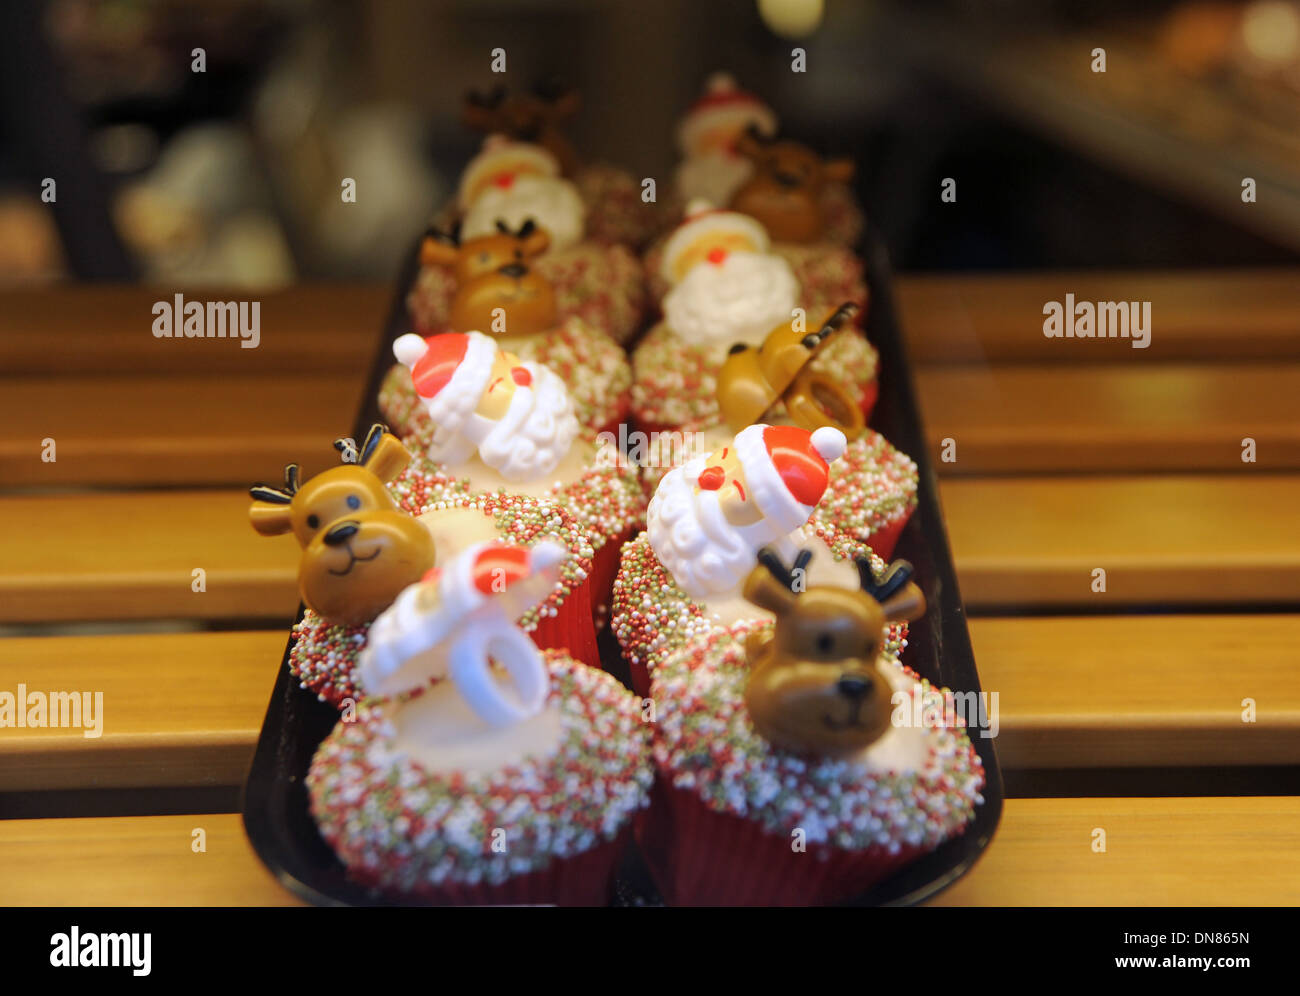 Christmas Themed Festive Cupcakes In Greggs The Bakers Shop Window